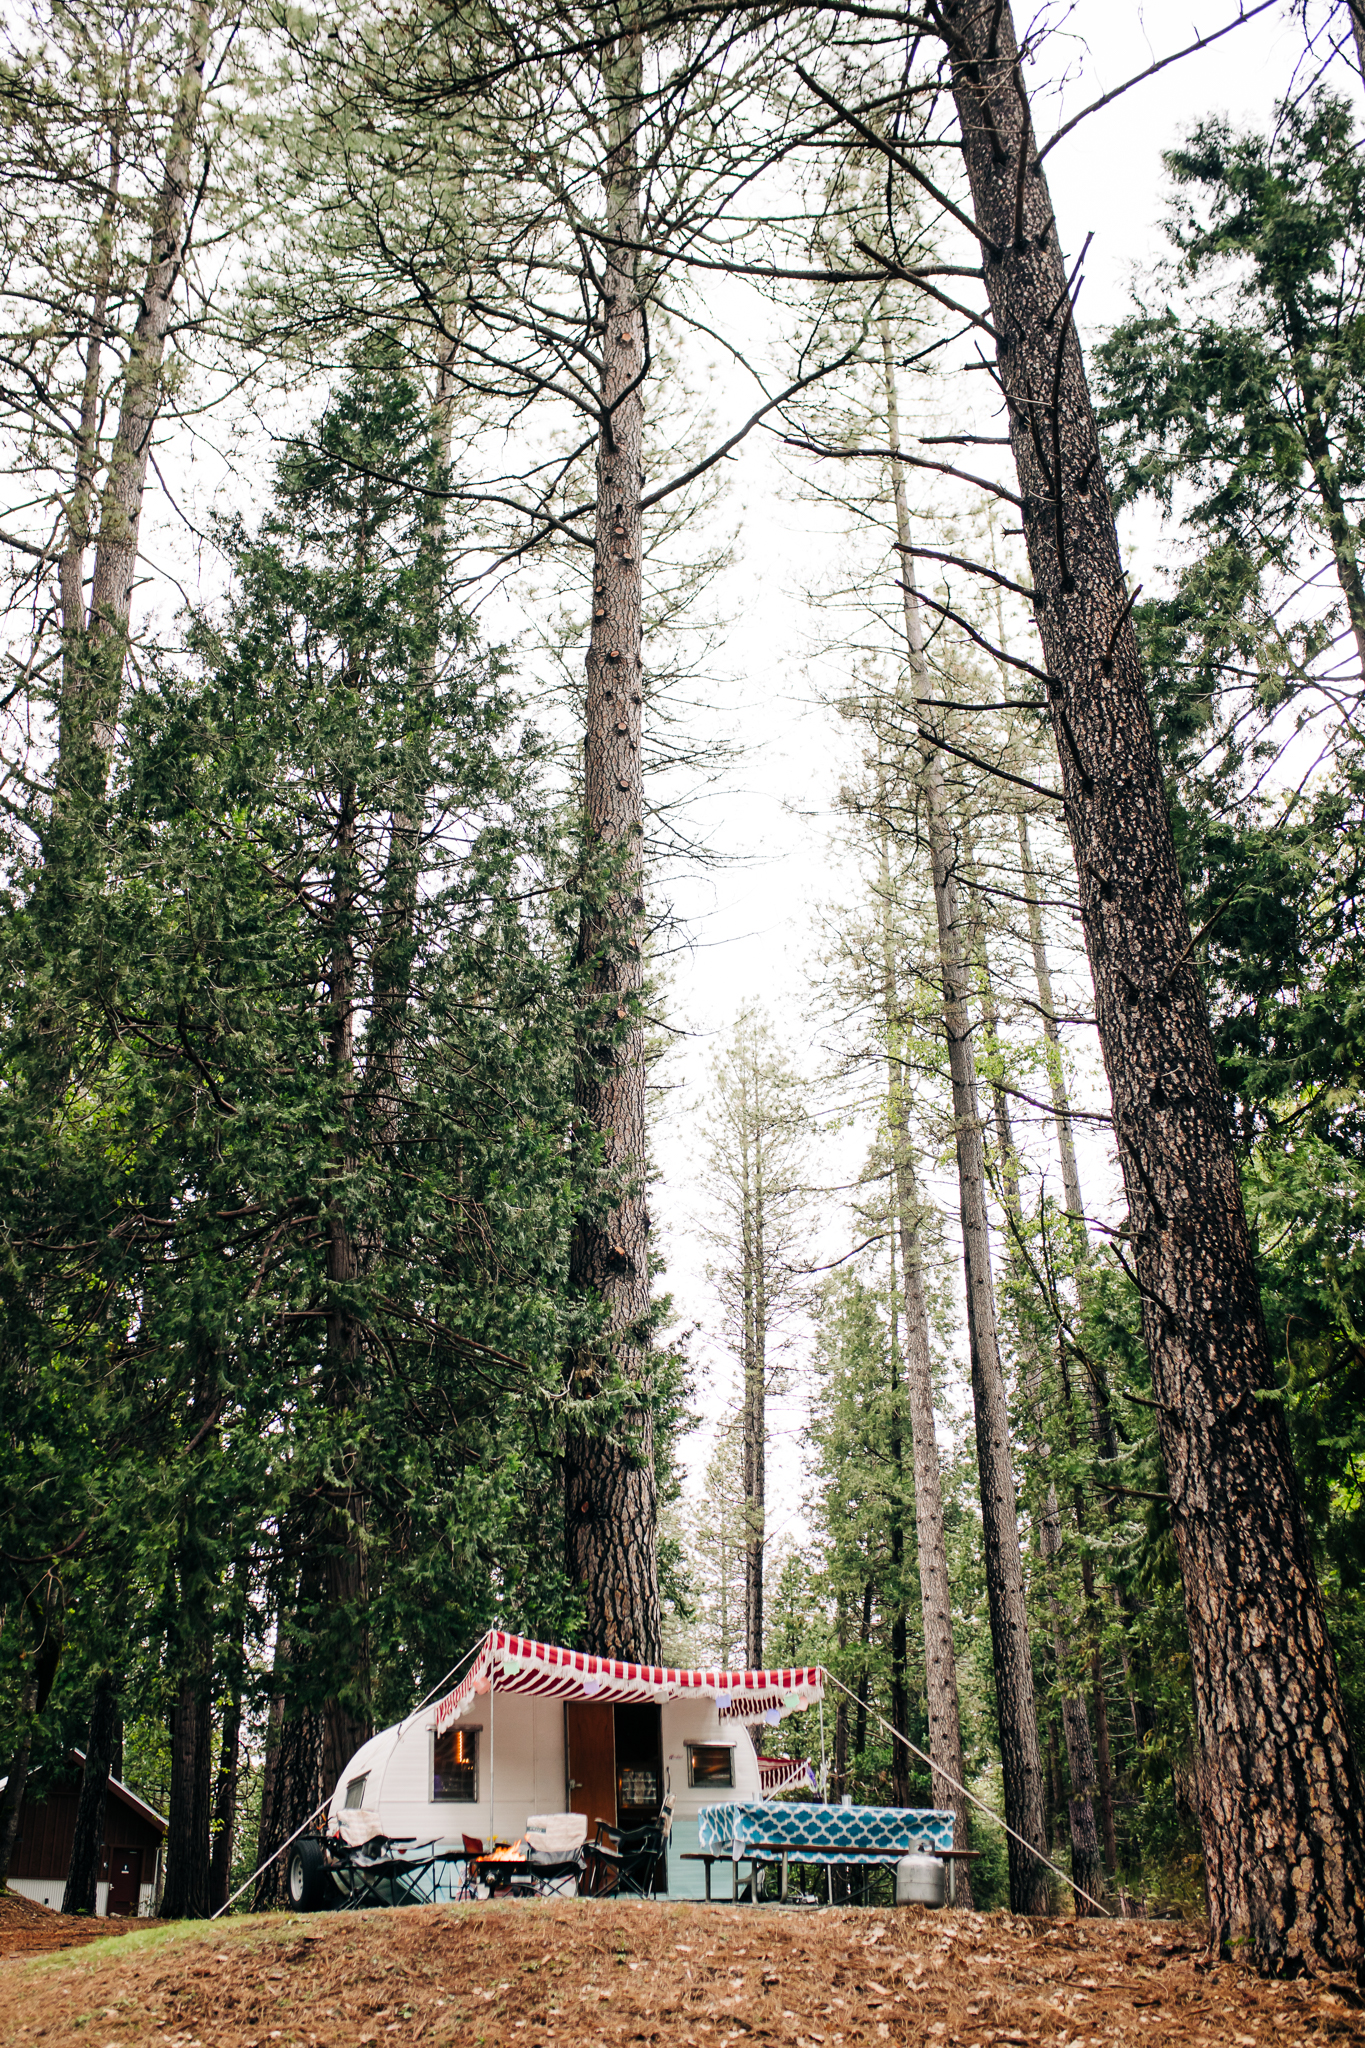 PhotoWalk at the Inn Town Campground with Nevada City Scenics |